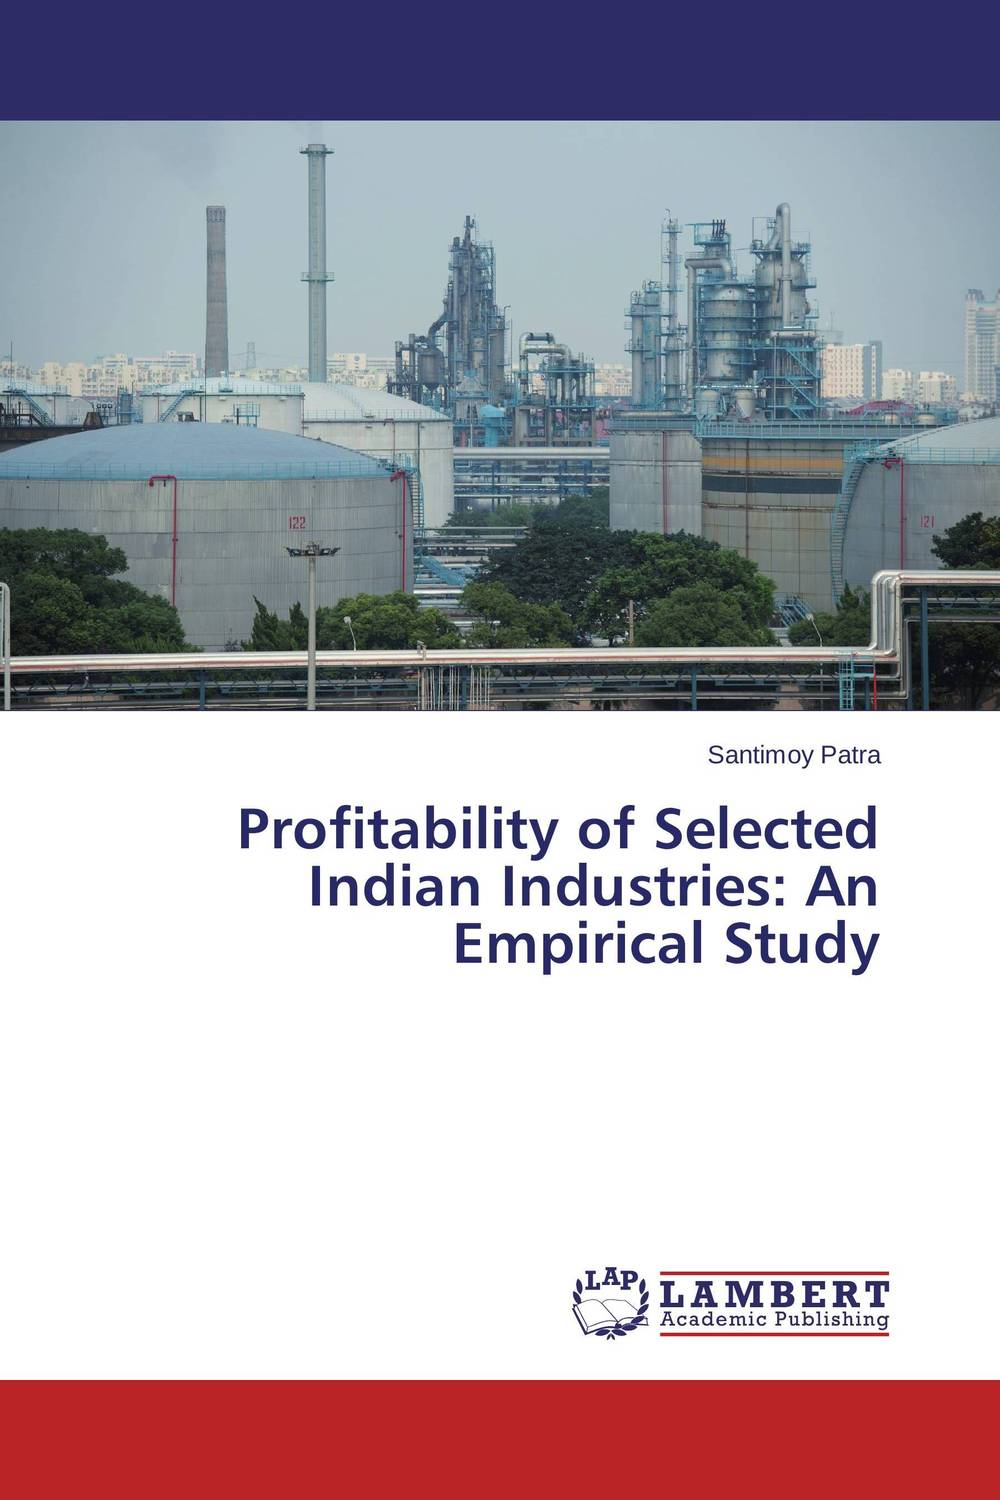 Profitability of Selected Indian Industries: An Empirical Study a stylistic study of the language of selected greeting cards